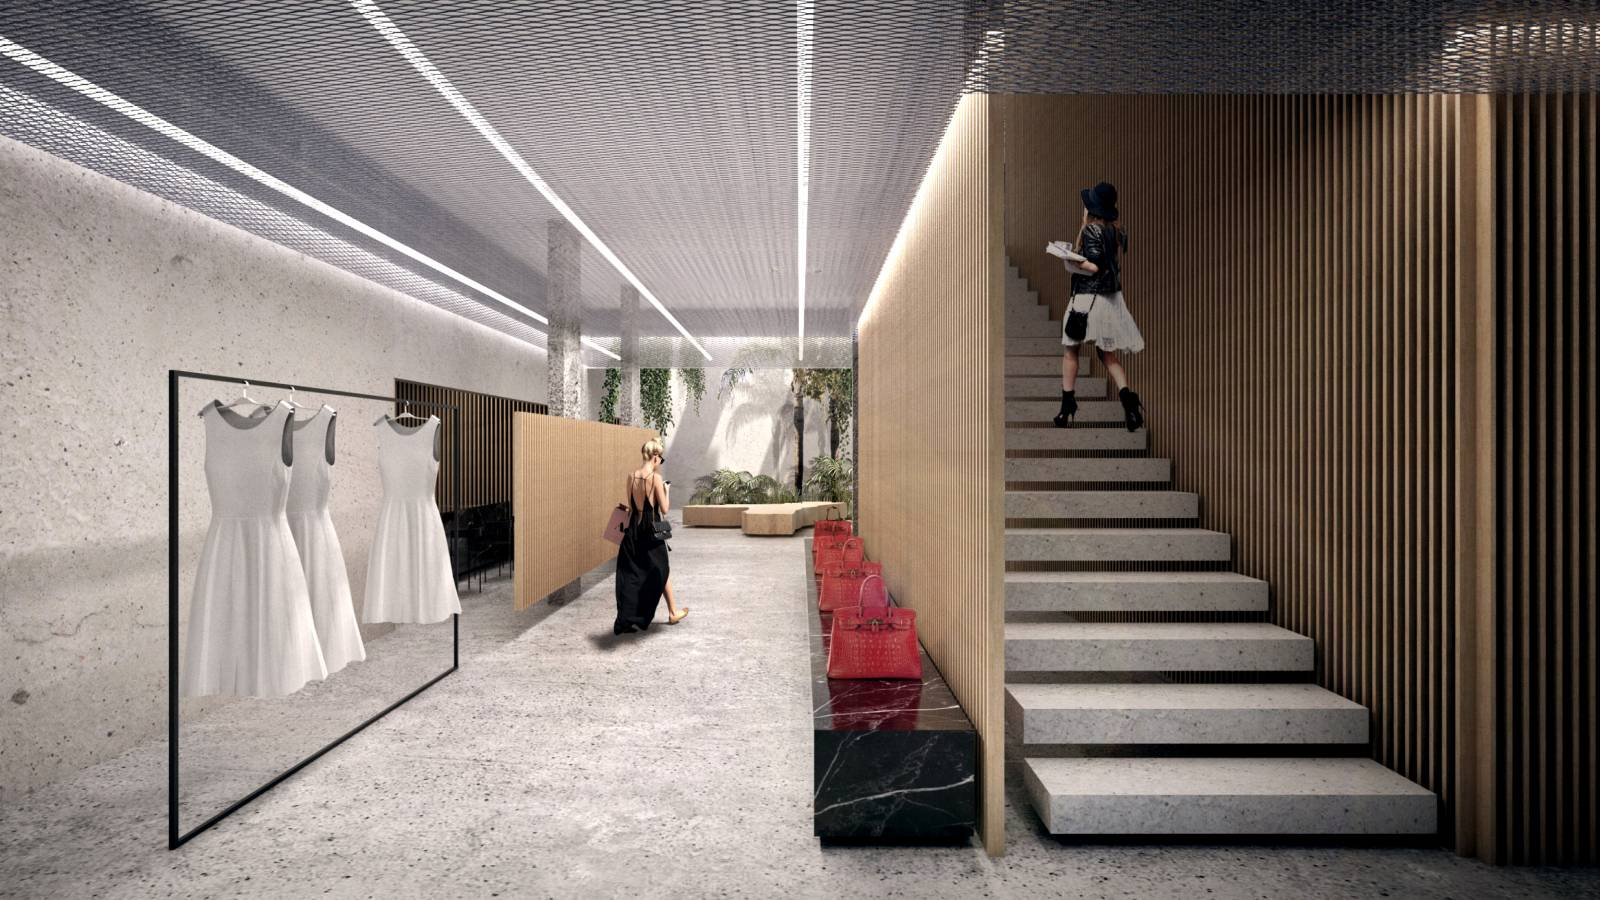 INTERIOR NK STORE - NK Store - SPOL Architects